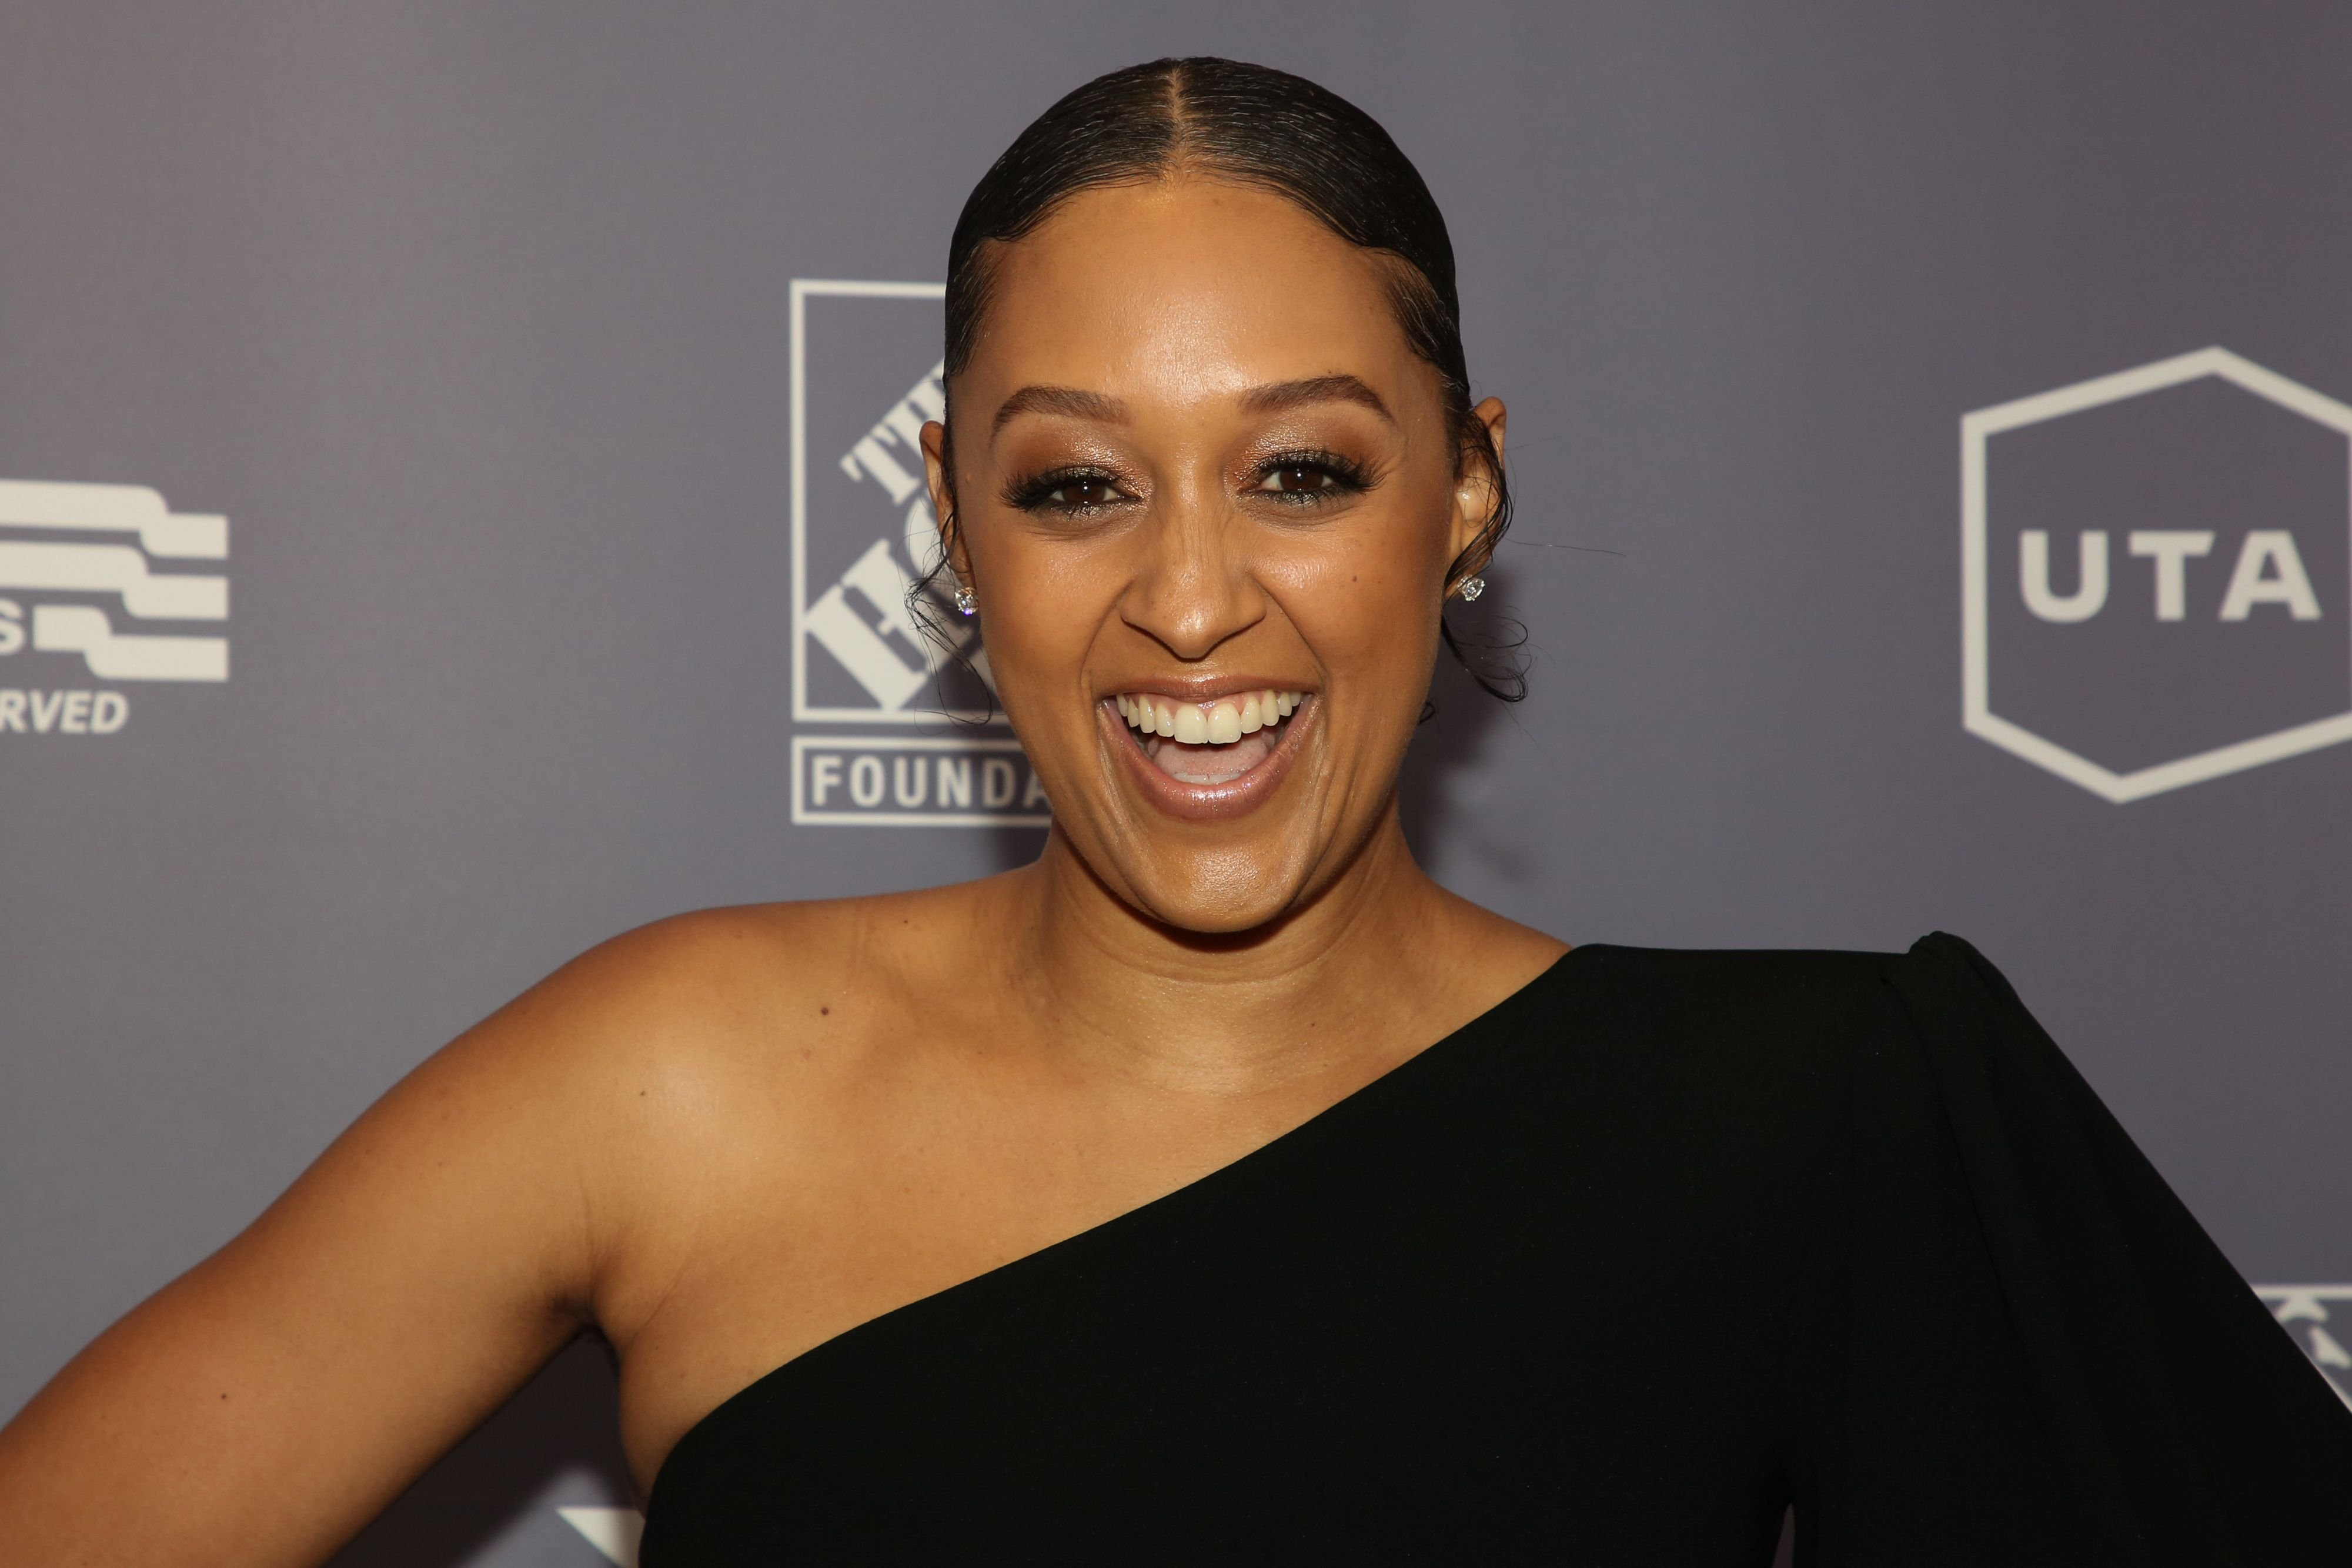 Tia Mowry at the 2019 US Vets Salute Gala on November 05, 2019 in Beverly Hills.   Photo: Getty Images